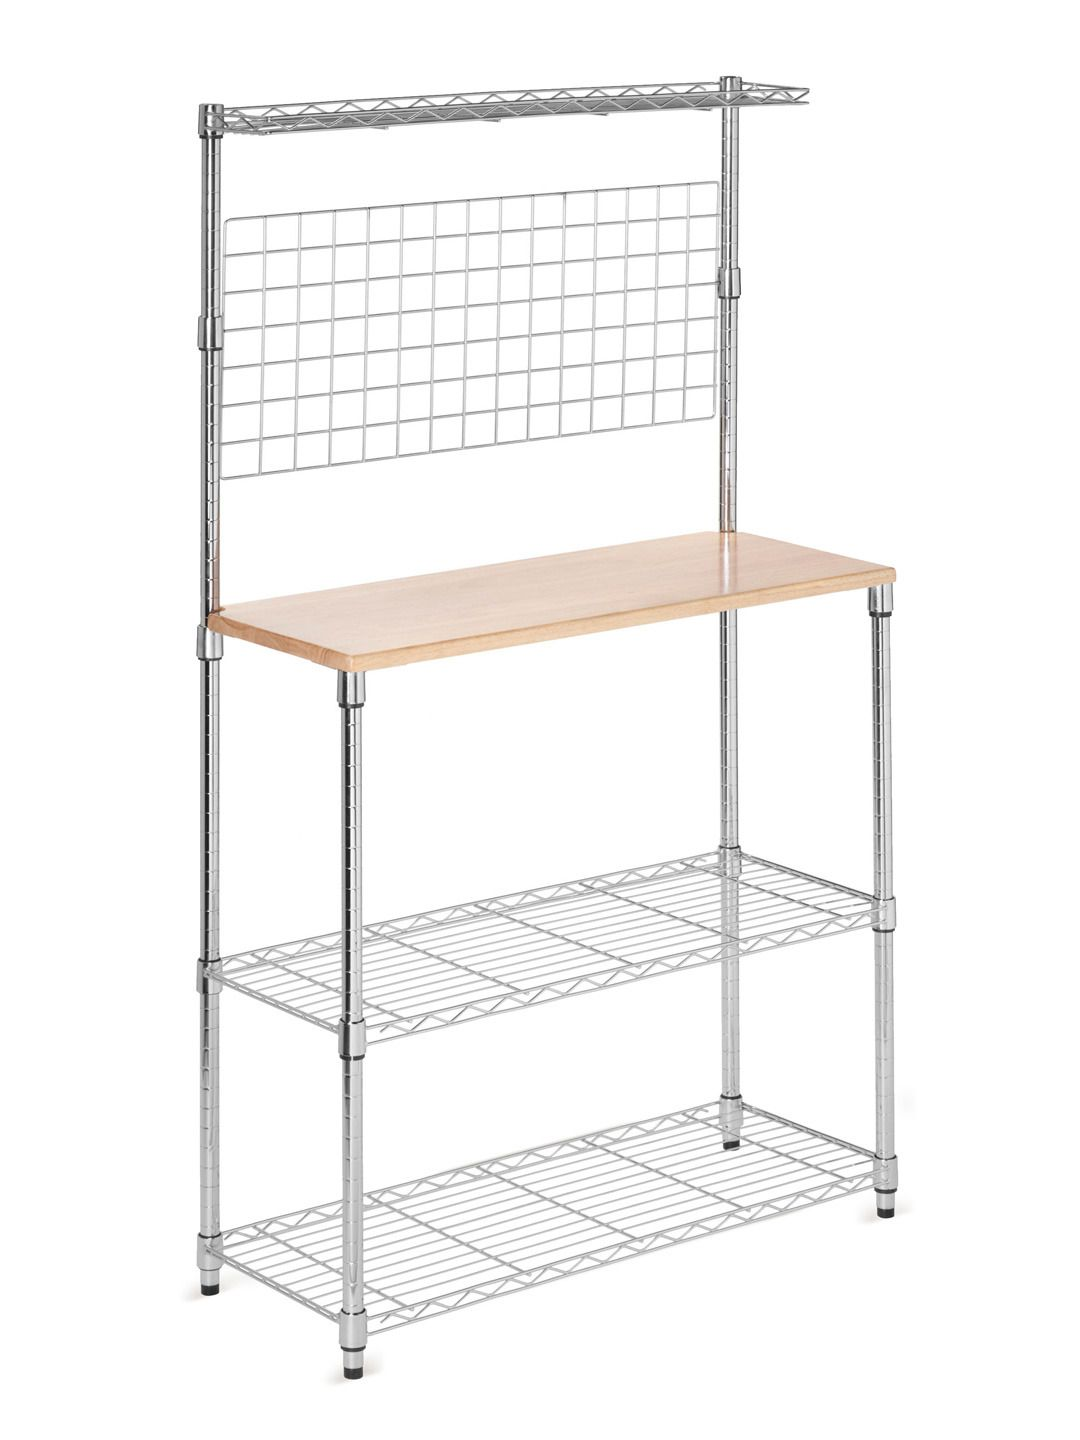 3 Tier Urban Baker S Rack By Hcd Storage At Gilt Bakers Rack